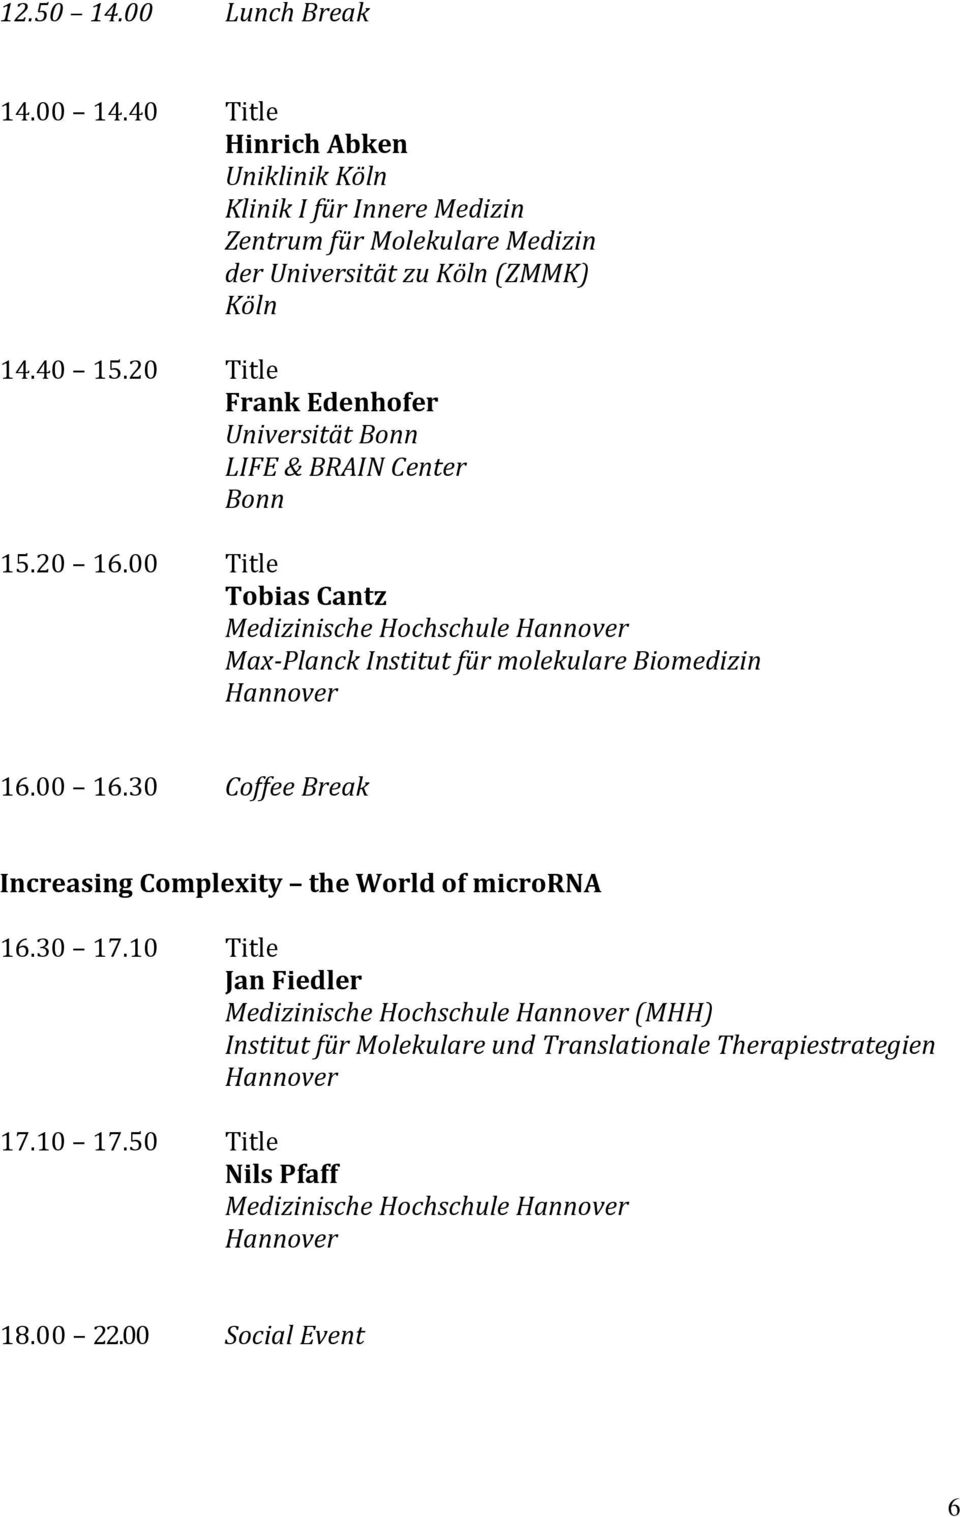 20 Title Frank Edenhofer Universität Bonn LIFE & BRAIN Center Bonn 15.20 16.